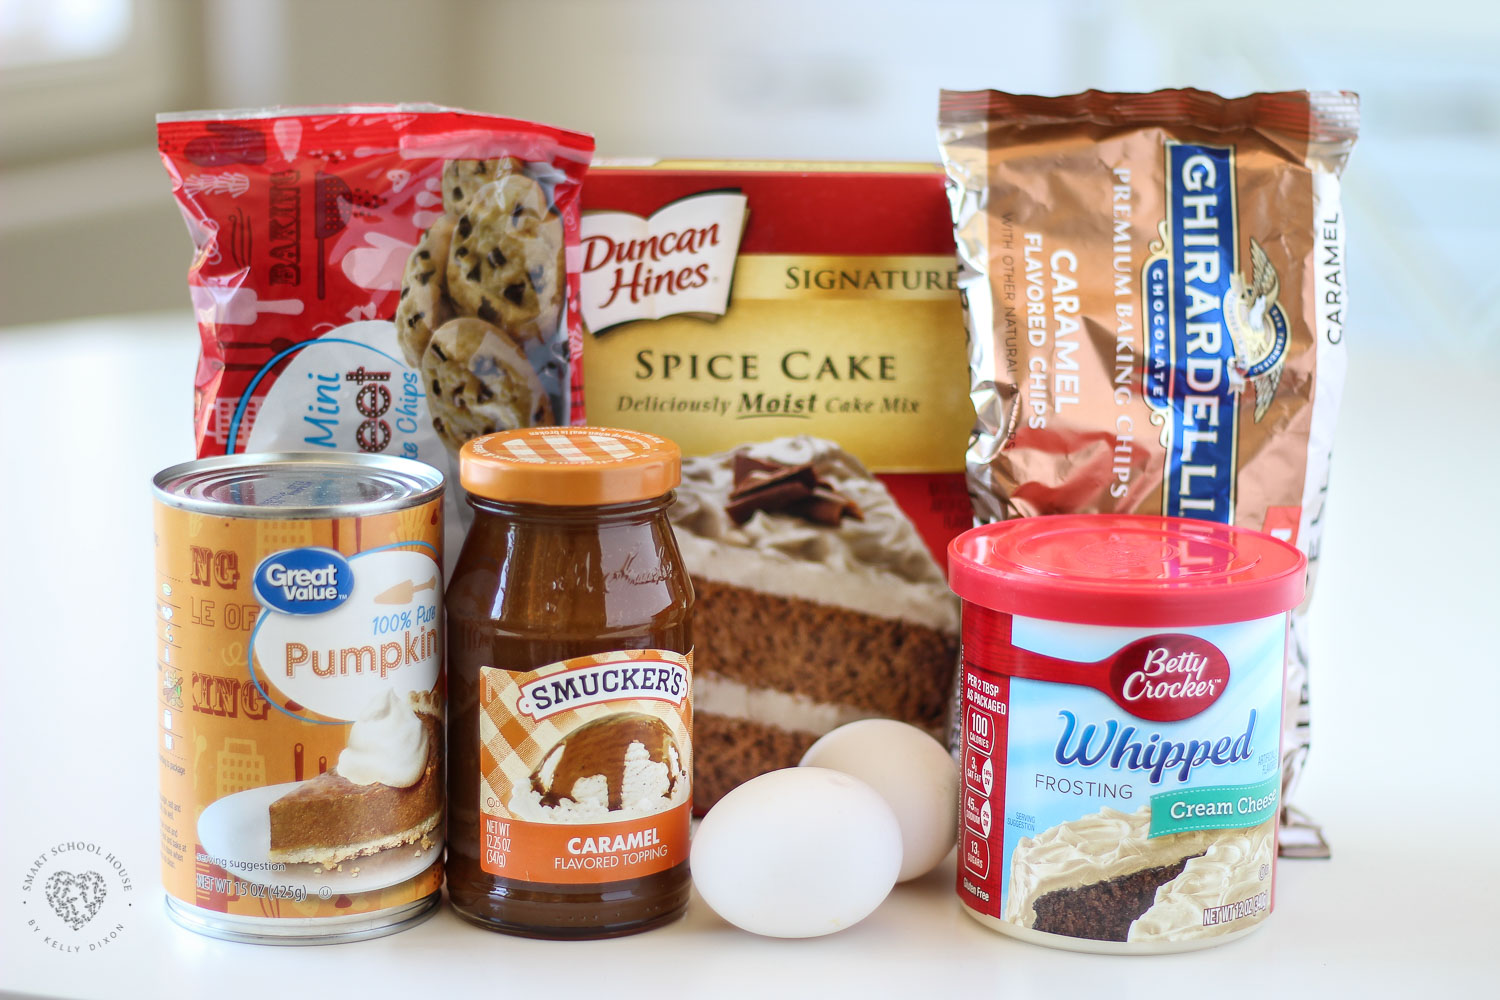 Pumpkin spice poke cake ingredients